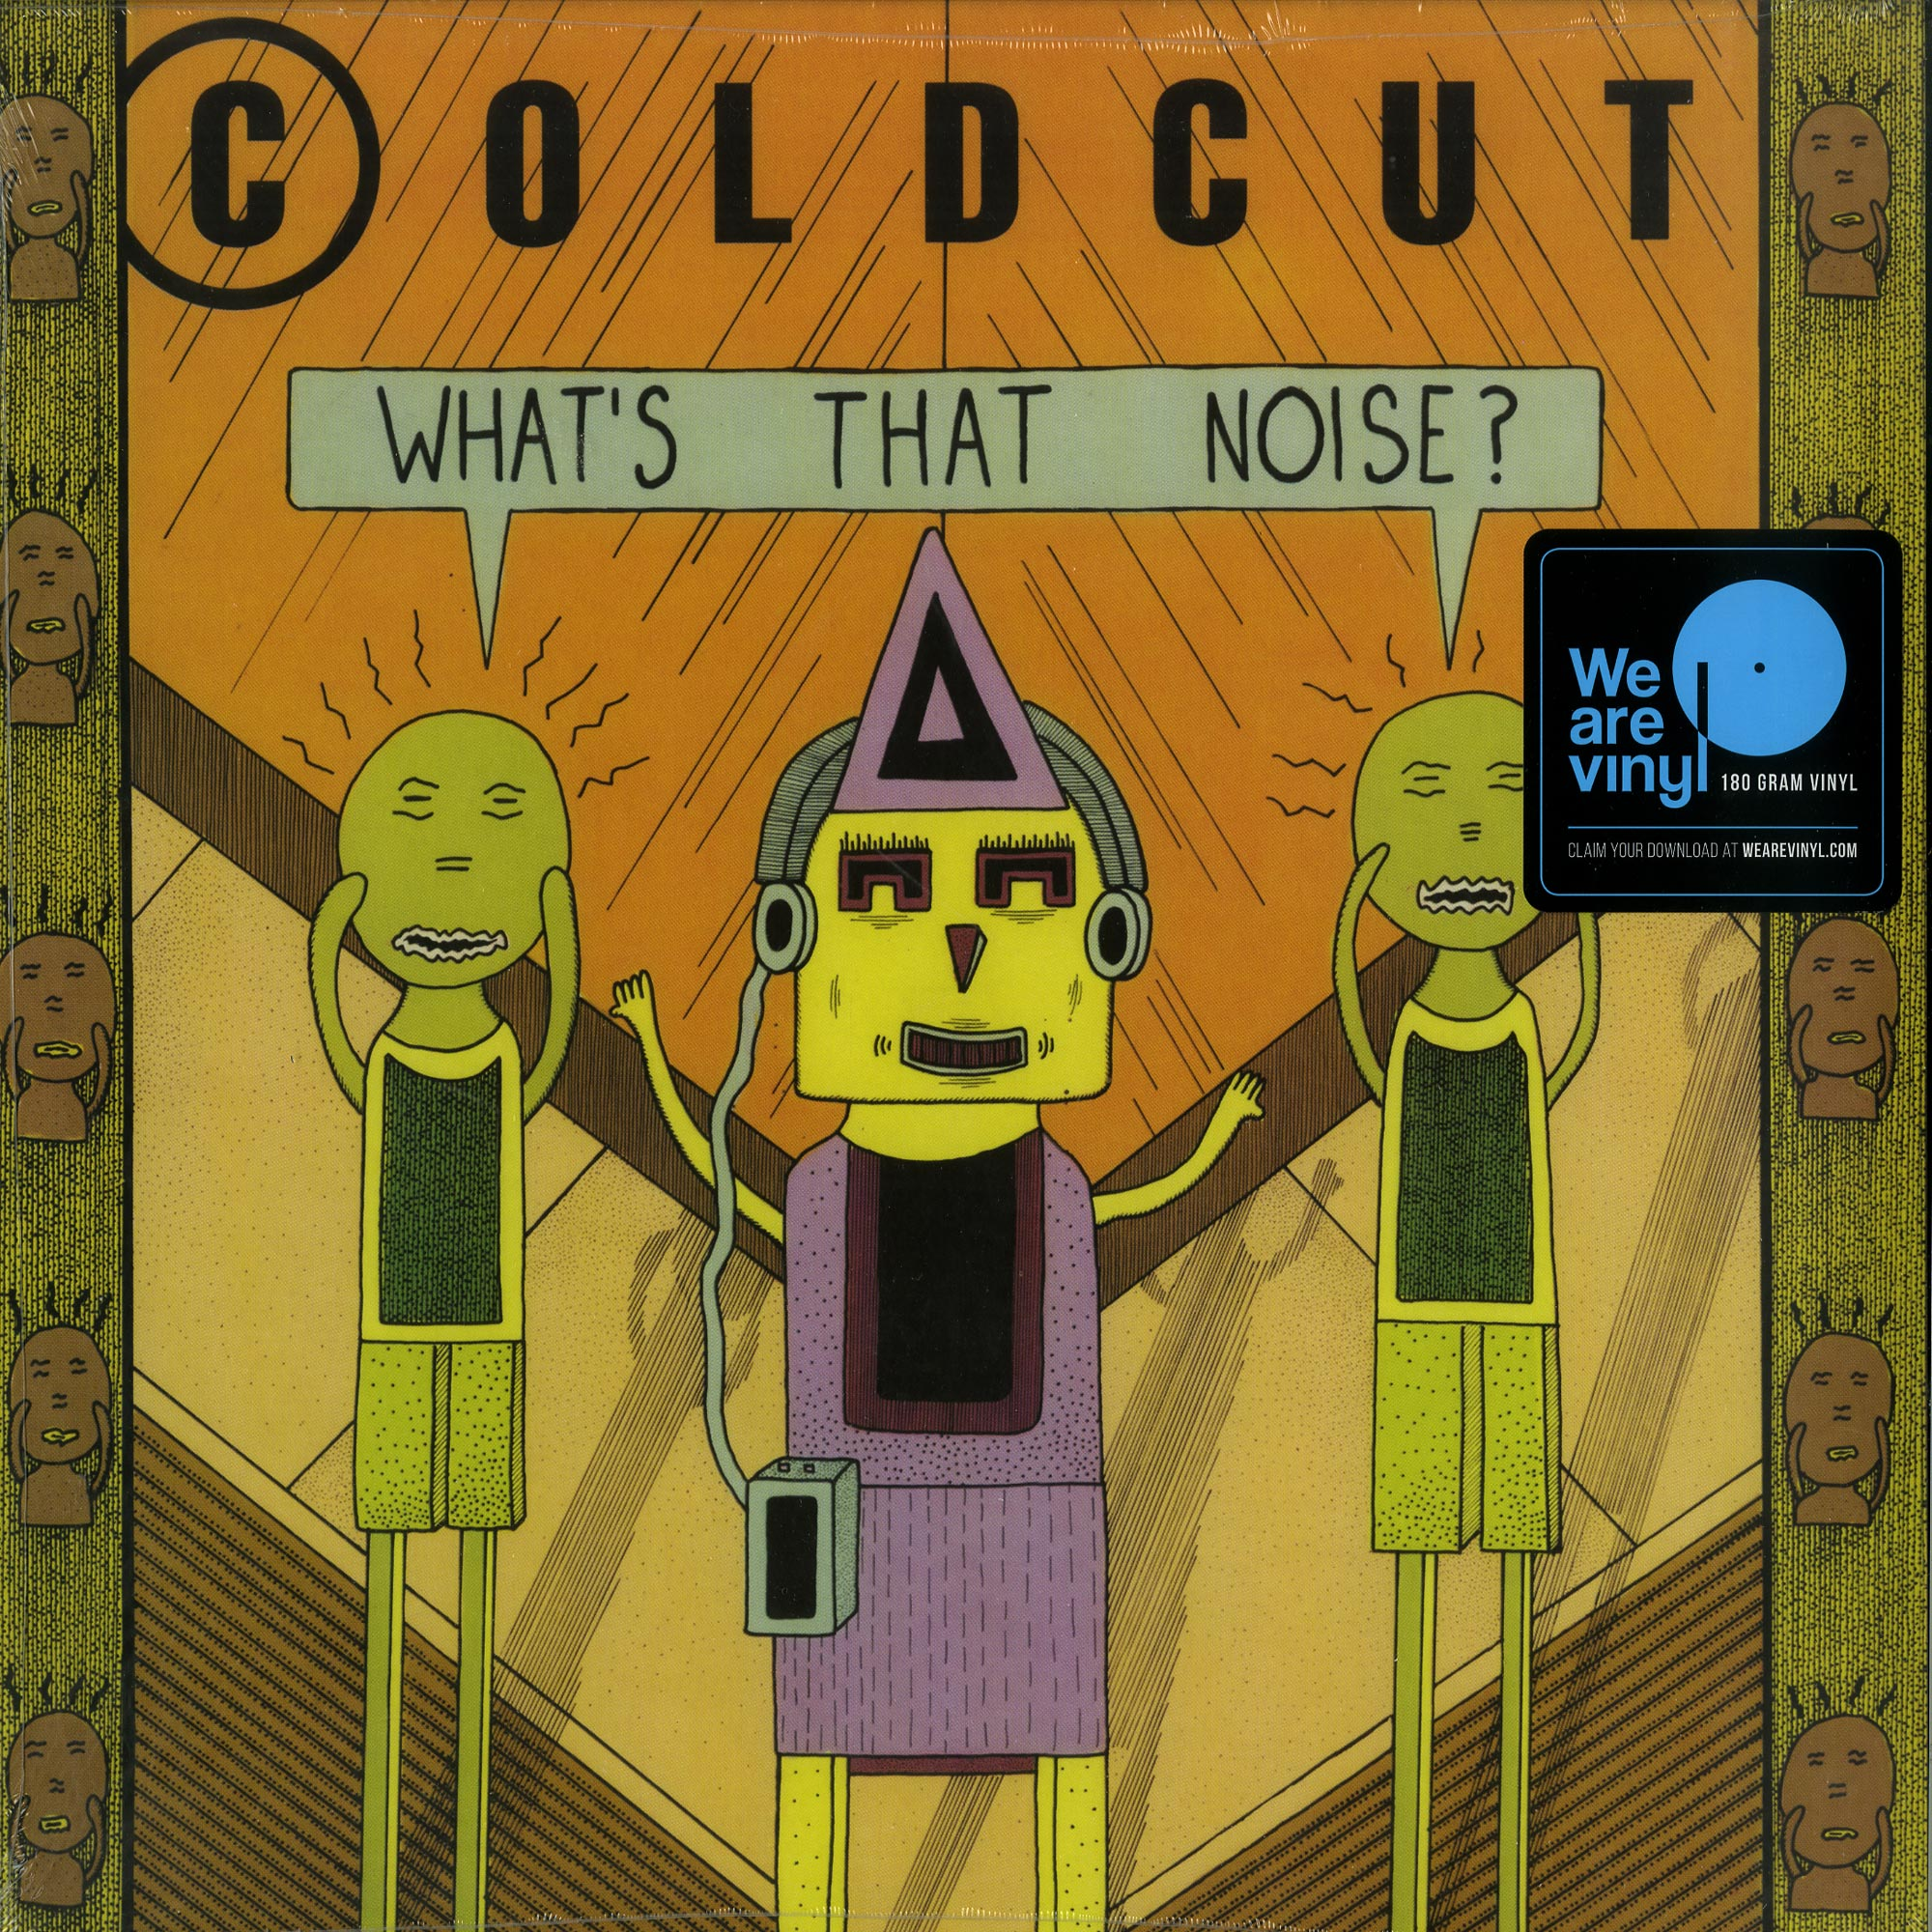 Coldcut - WHATS THAT NOISE?